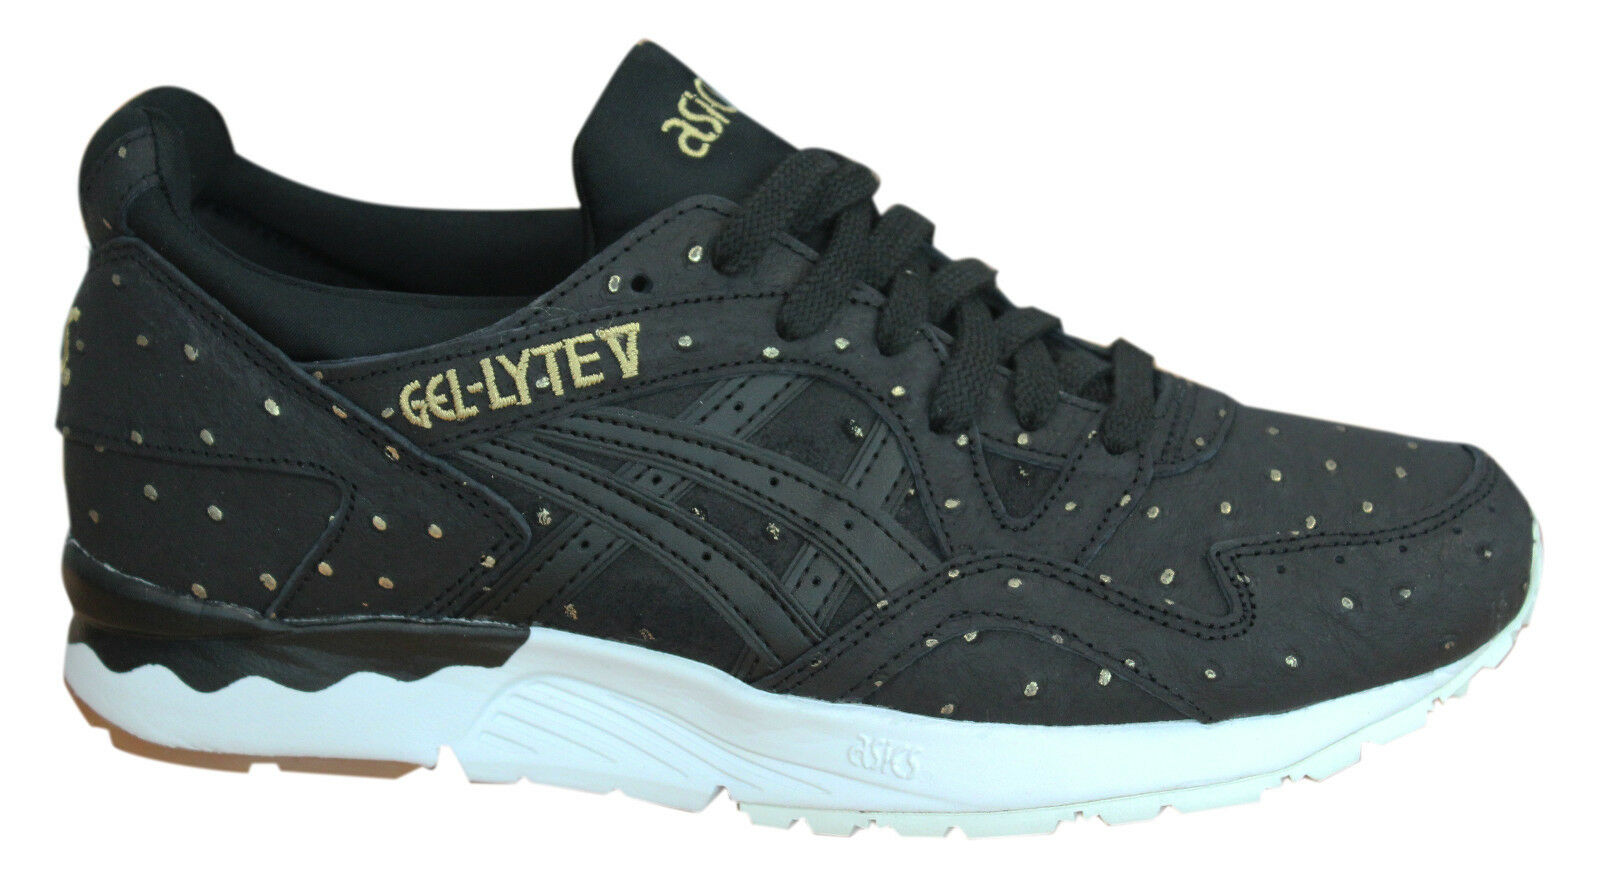 Asics Gel-Lyte V Lace Up Black White Leather Womens Trainers H785L 9090 P3 Special limited time